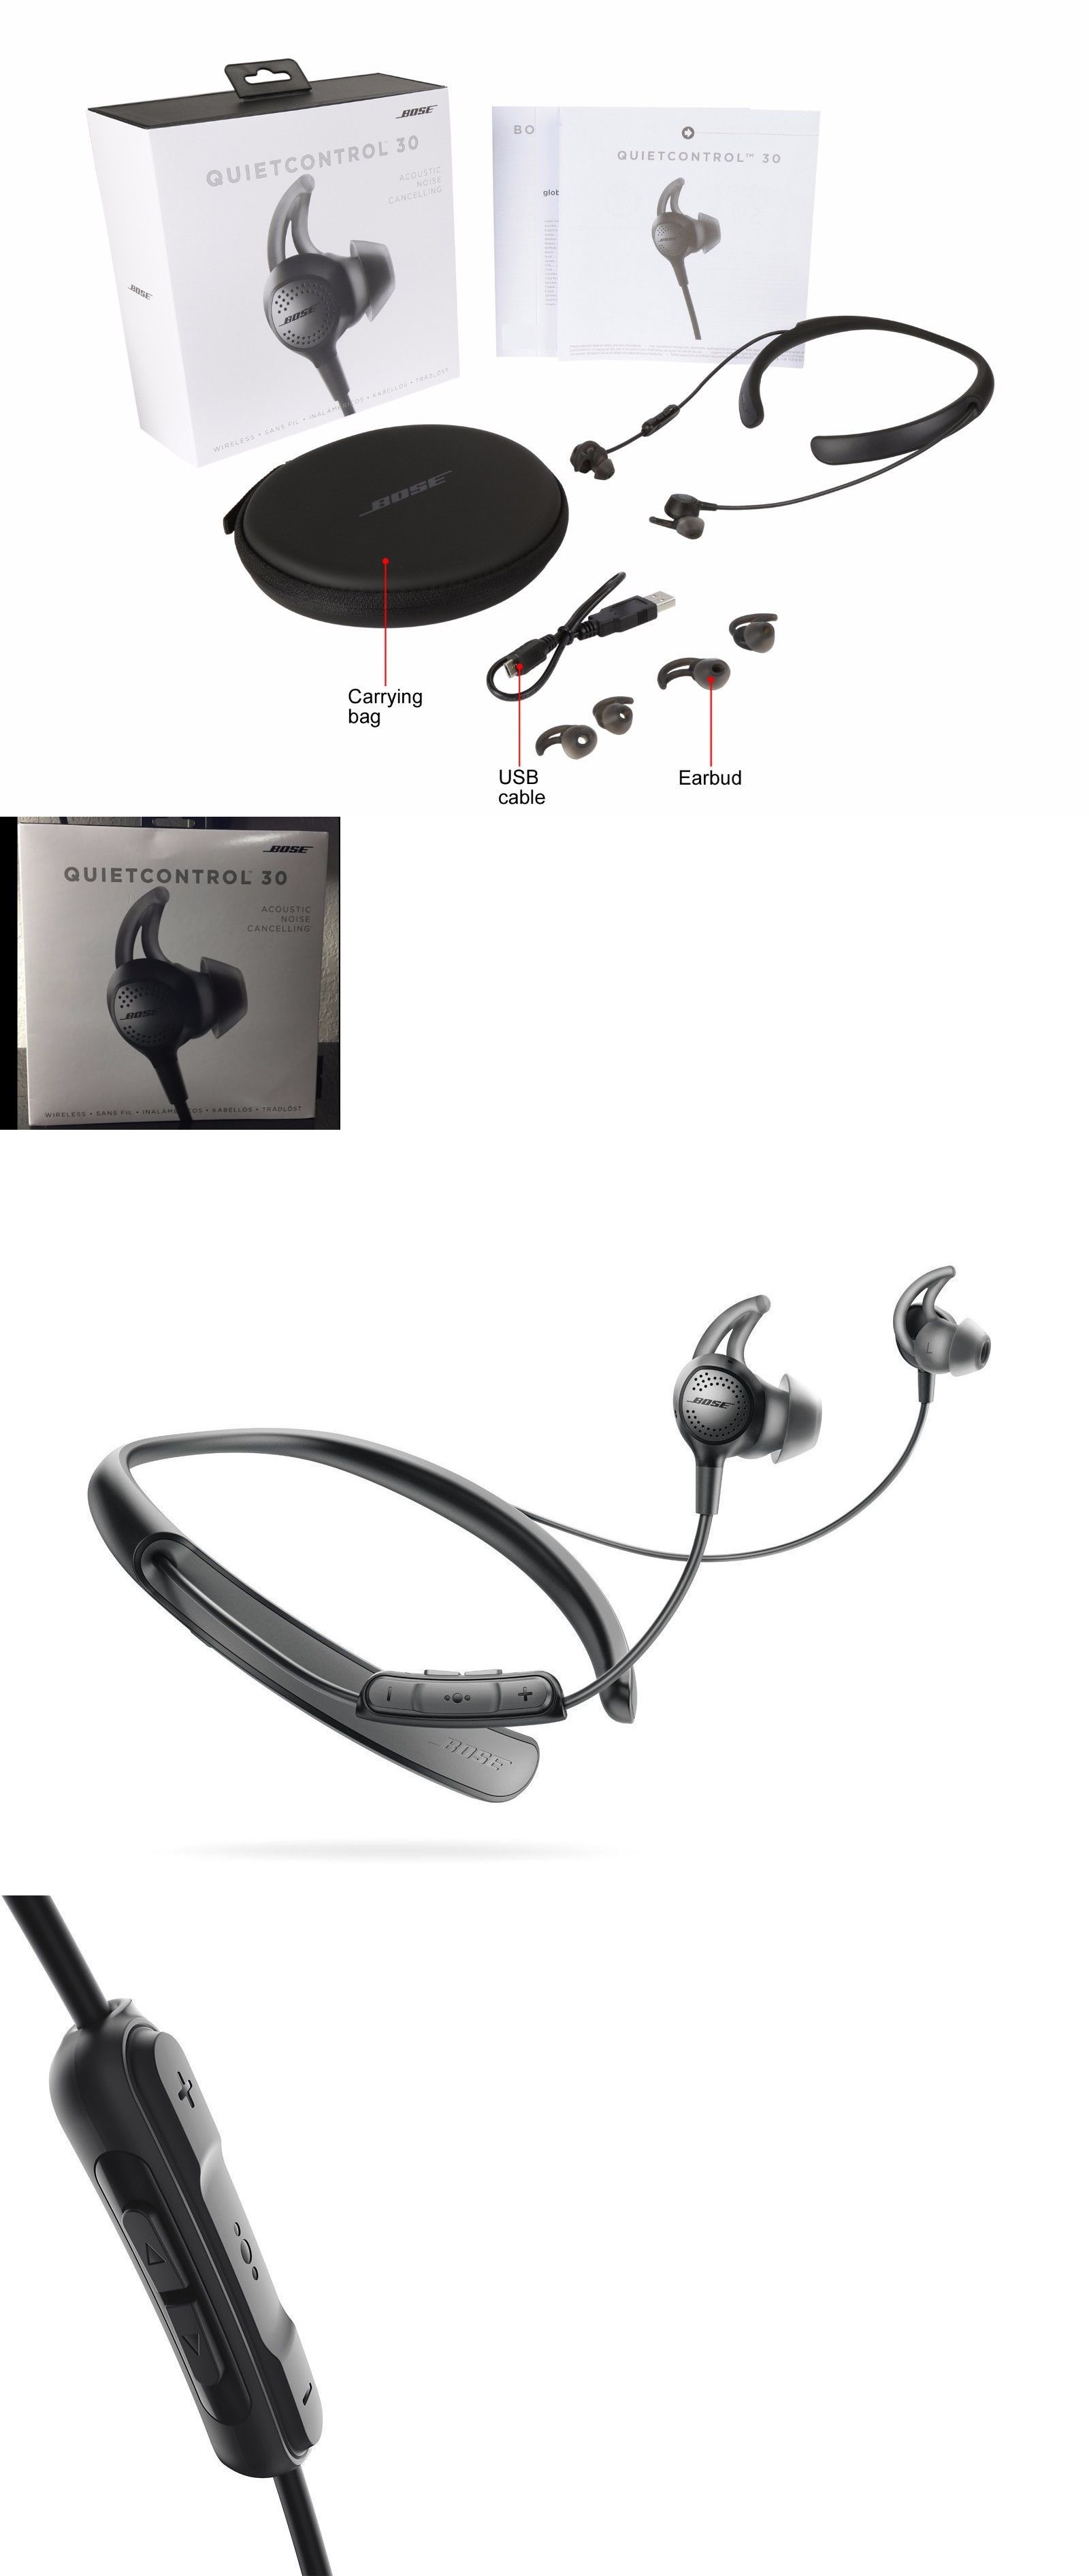 Headsets And Earpieces 2017 Brand New Sealed Bose Quietcontrol30 Earphone Sony Xb80bs Extra Bass Sports Bluetooth Qc30 Wireless Headphones Black